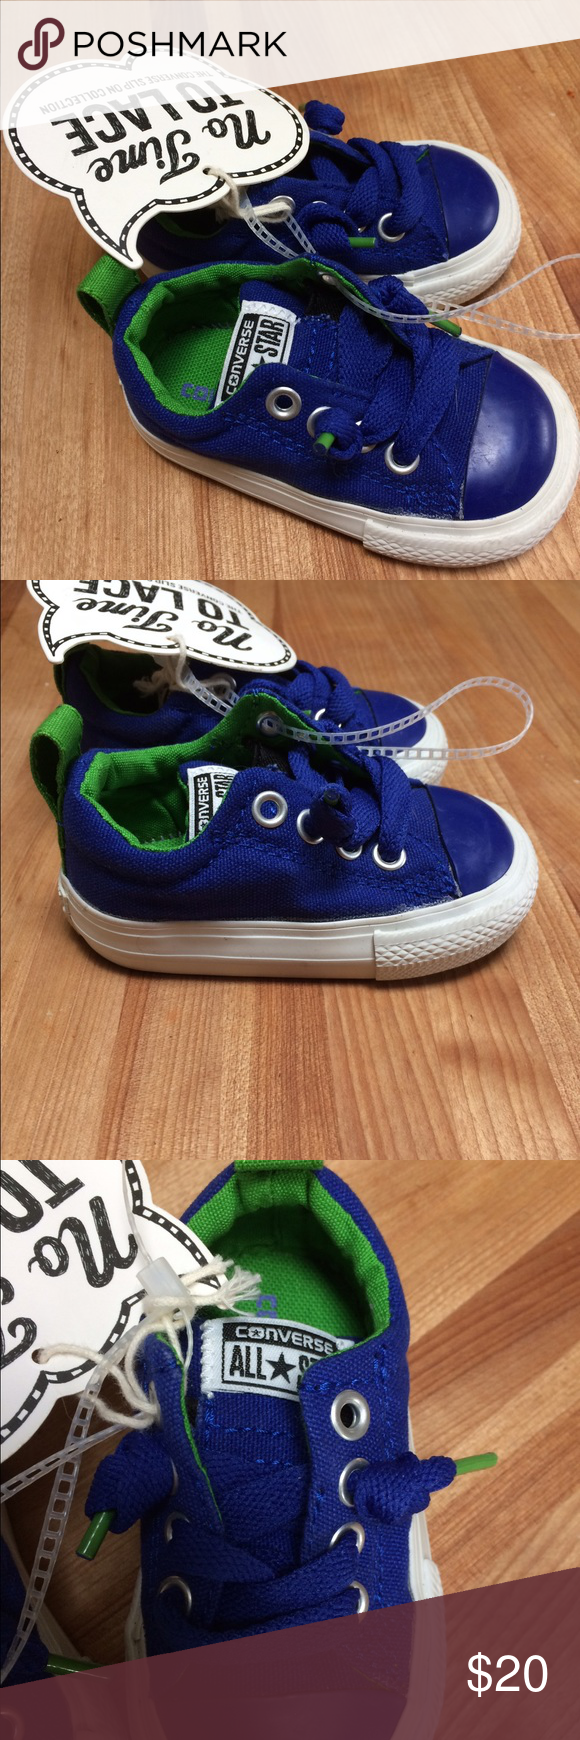 Baby Converse Royal blue with green inside. Slip on style